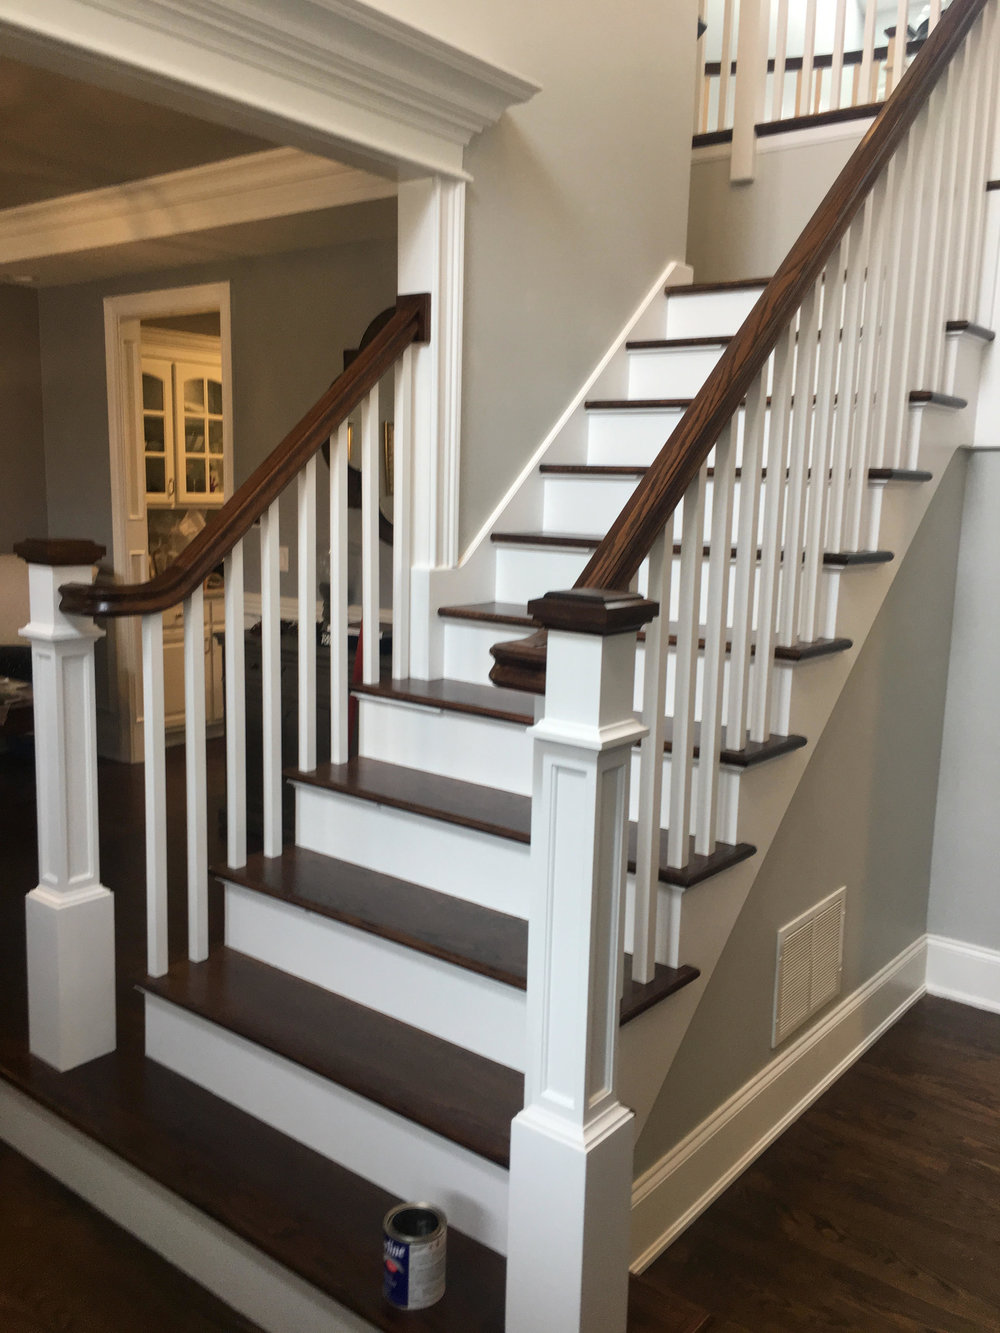 NAPERVILLE FOYER STAIR CASE REMODELING & UPDATING